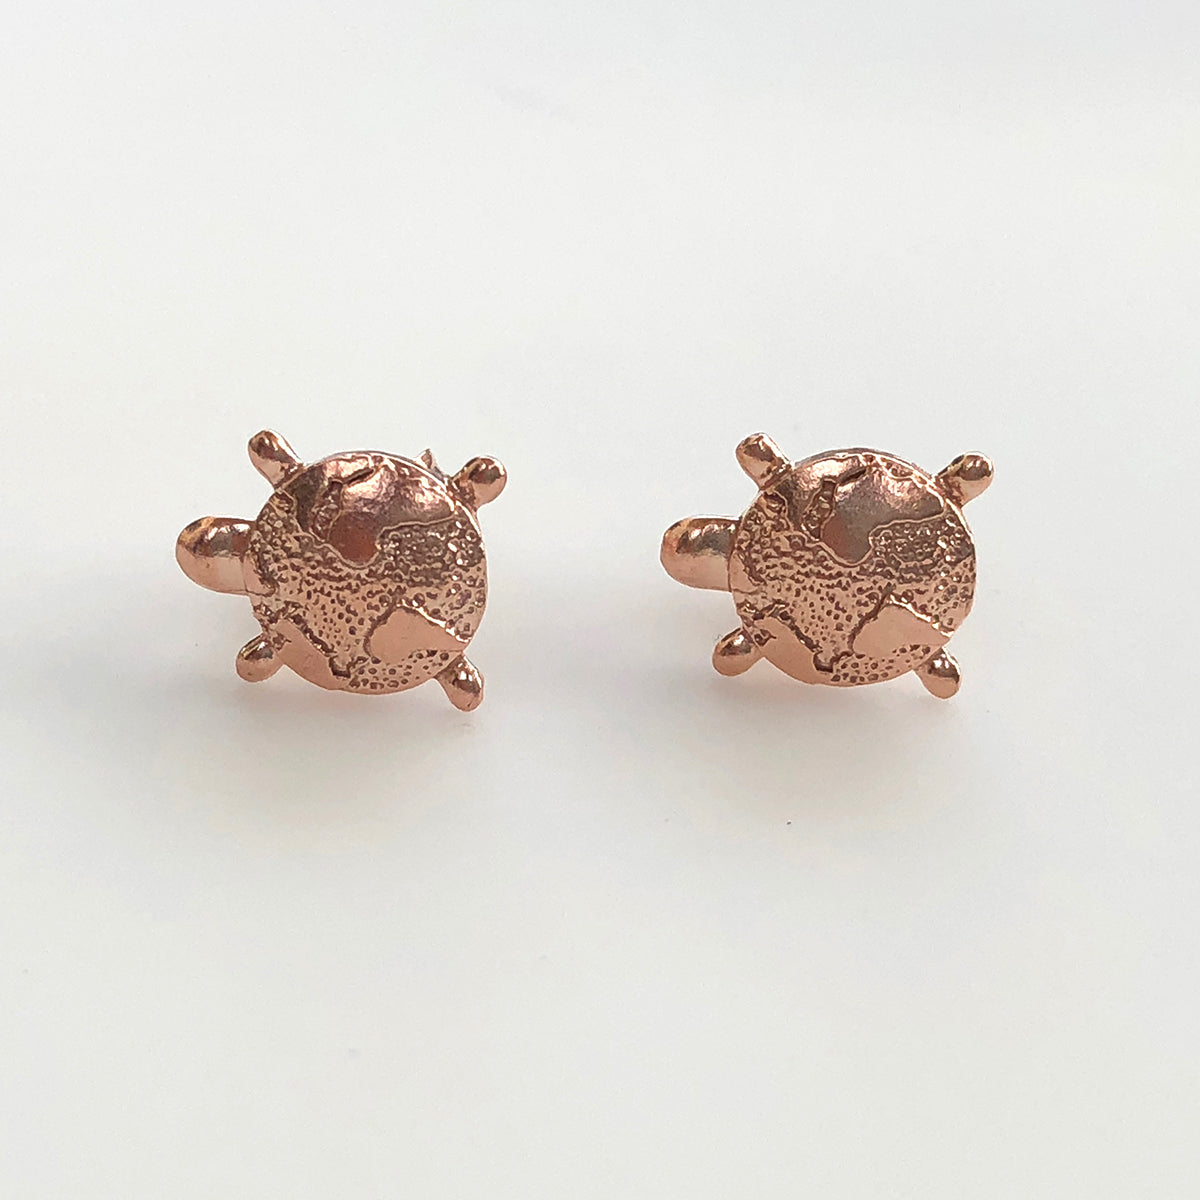 earrings accessories earring alloy lovely dvxaf authentic female sea bohemian stud new animal peace color retro jewelry turtle symbol sterling arrival set for silver item